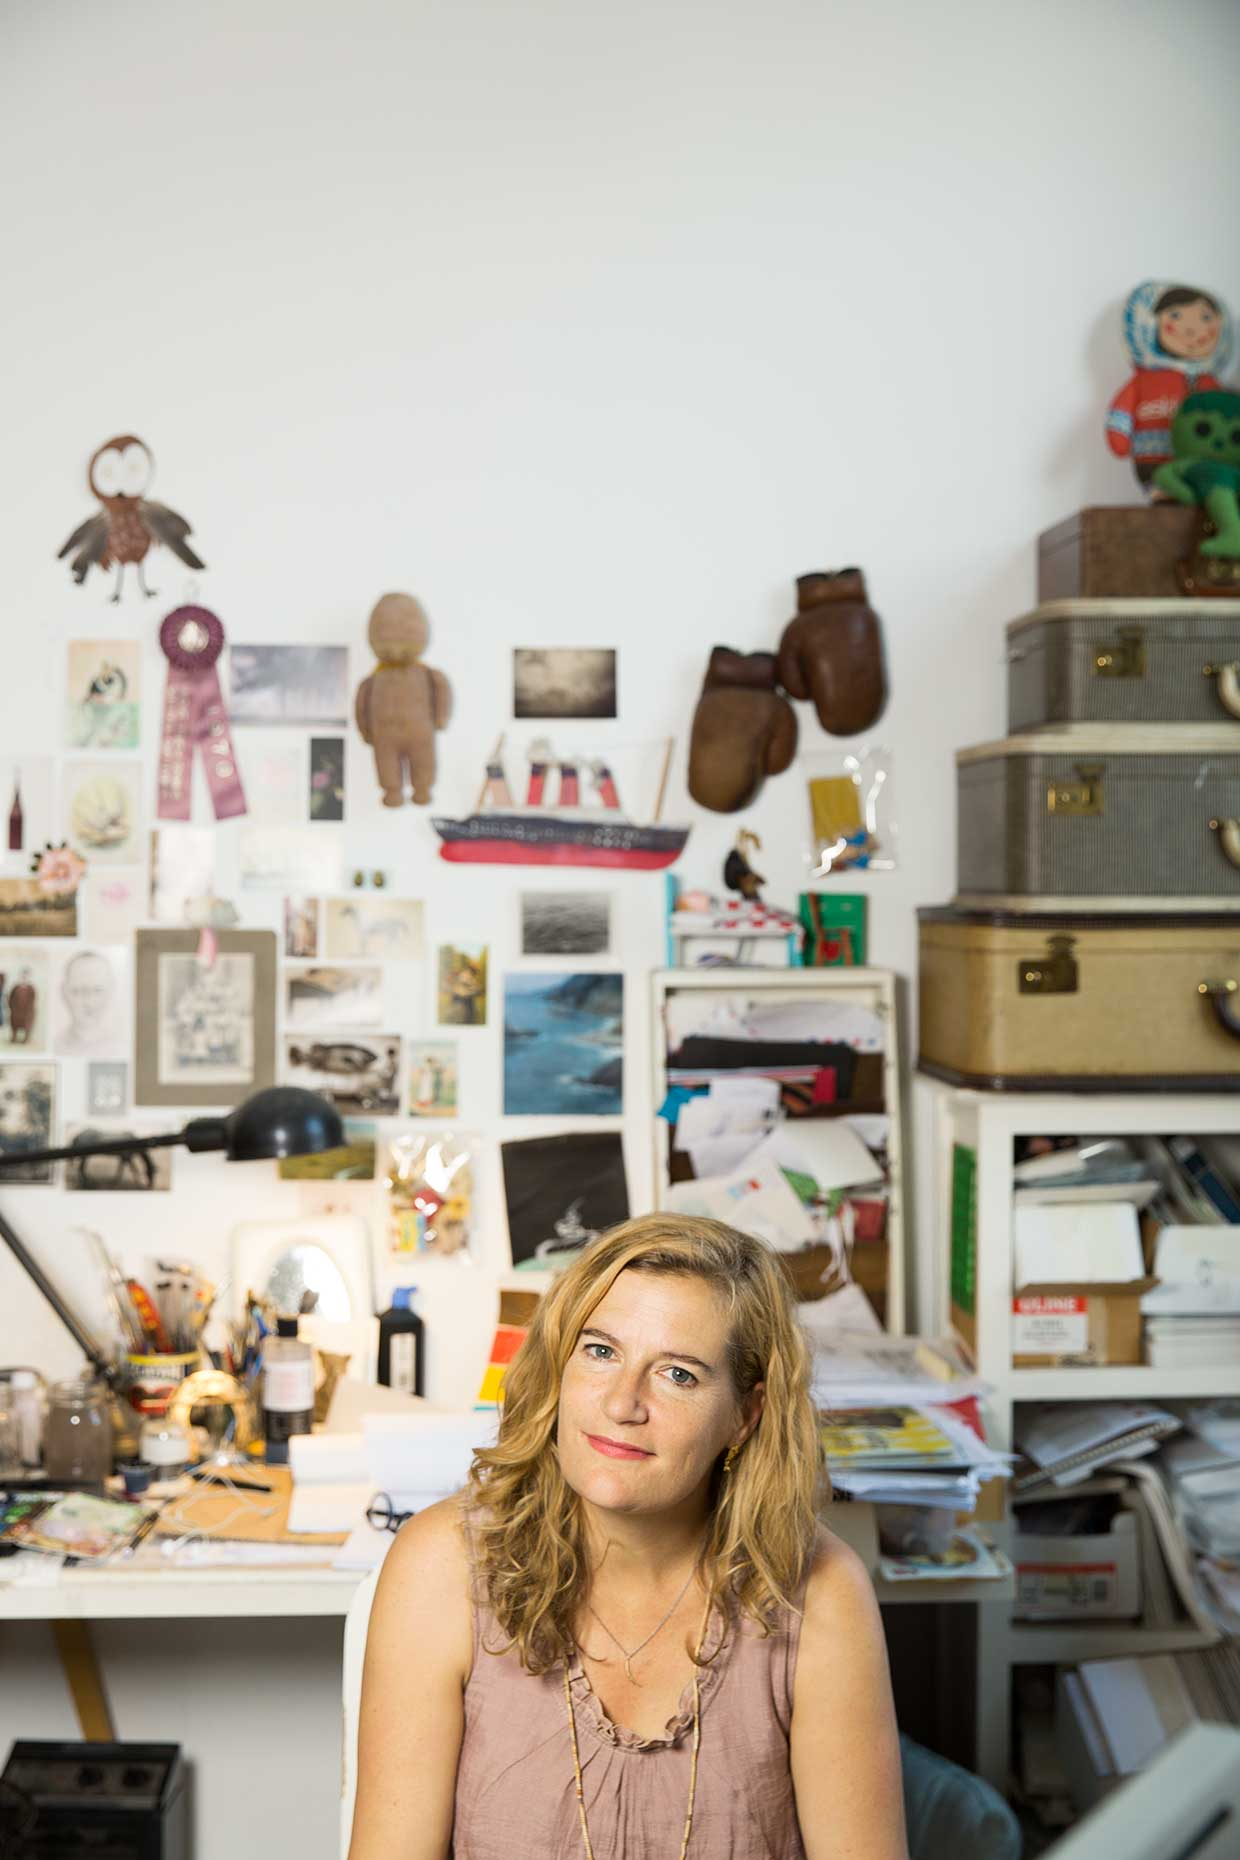 Sophie Blackall, Illustrator & Author, Brooklyn, NY